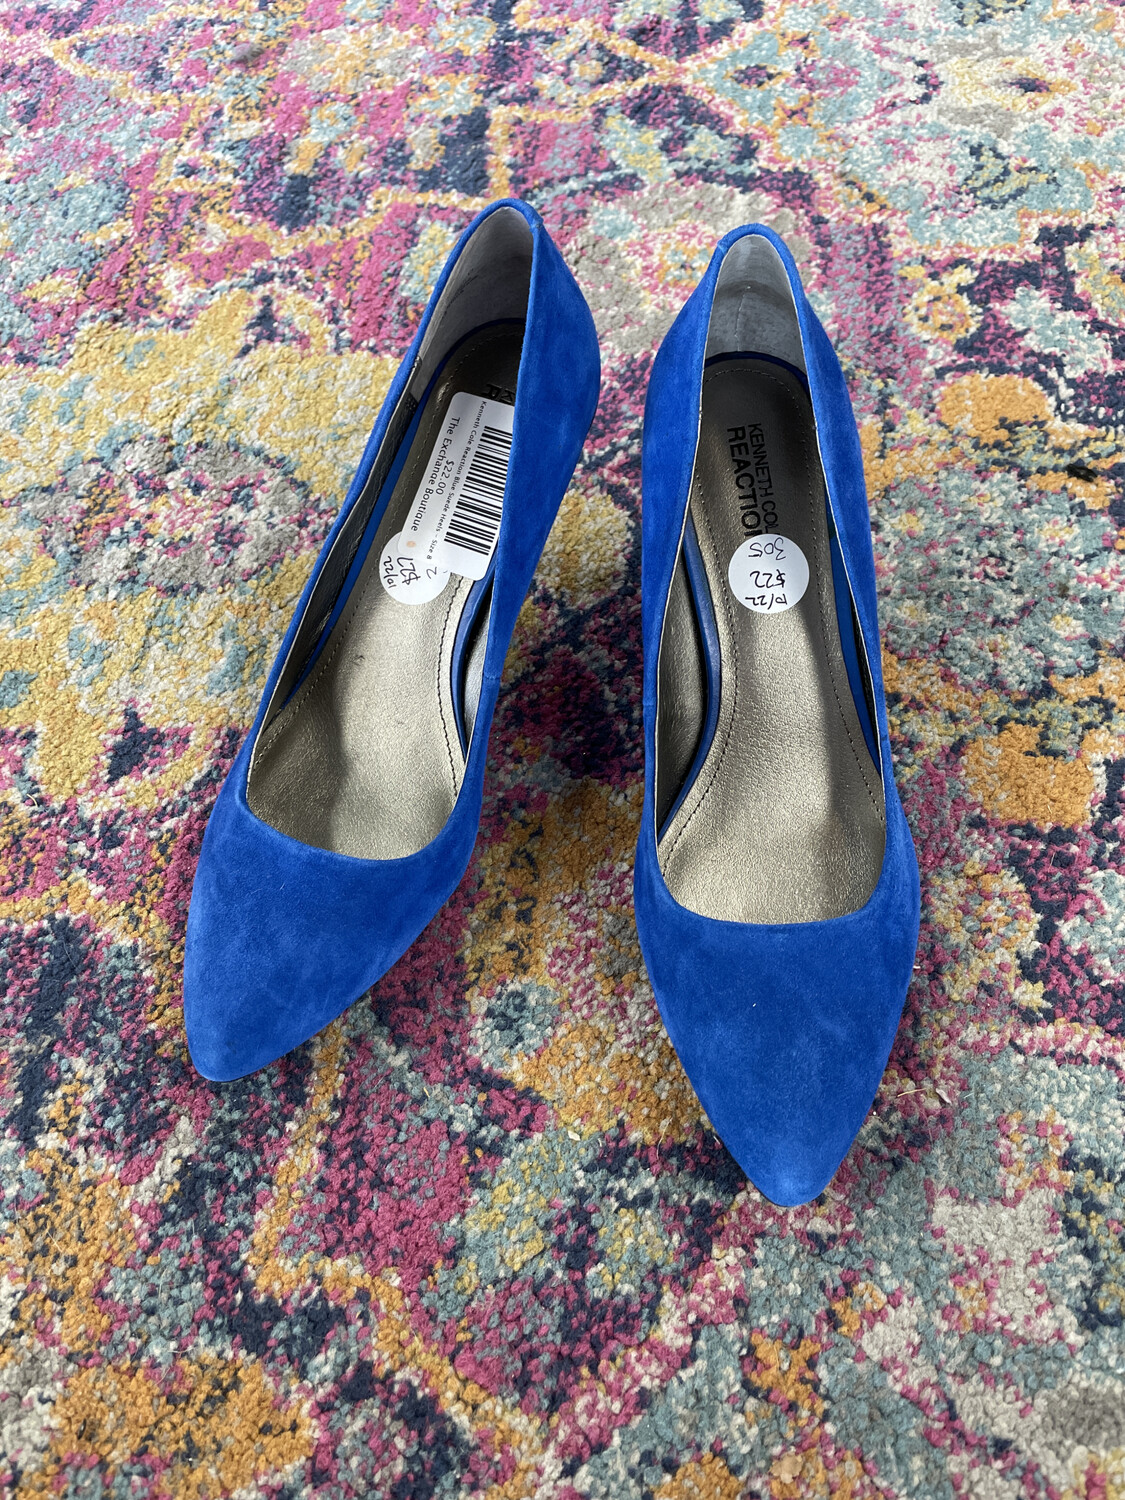 Kenneth Cole Reaction Blue Suede Heels - Size 8